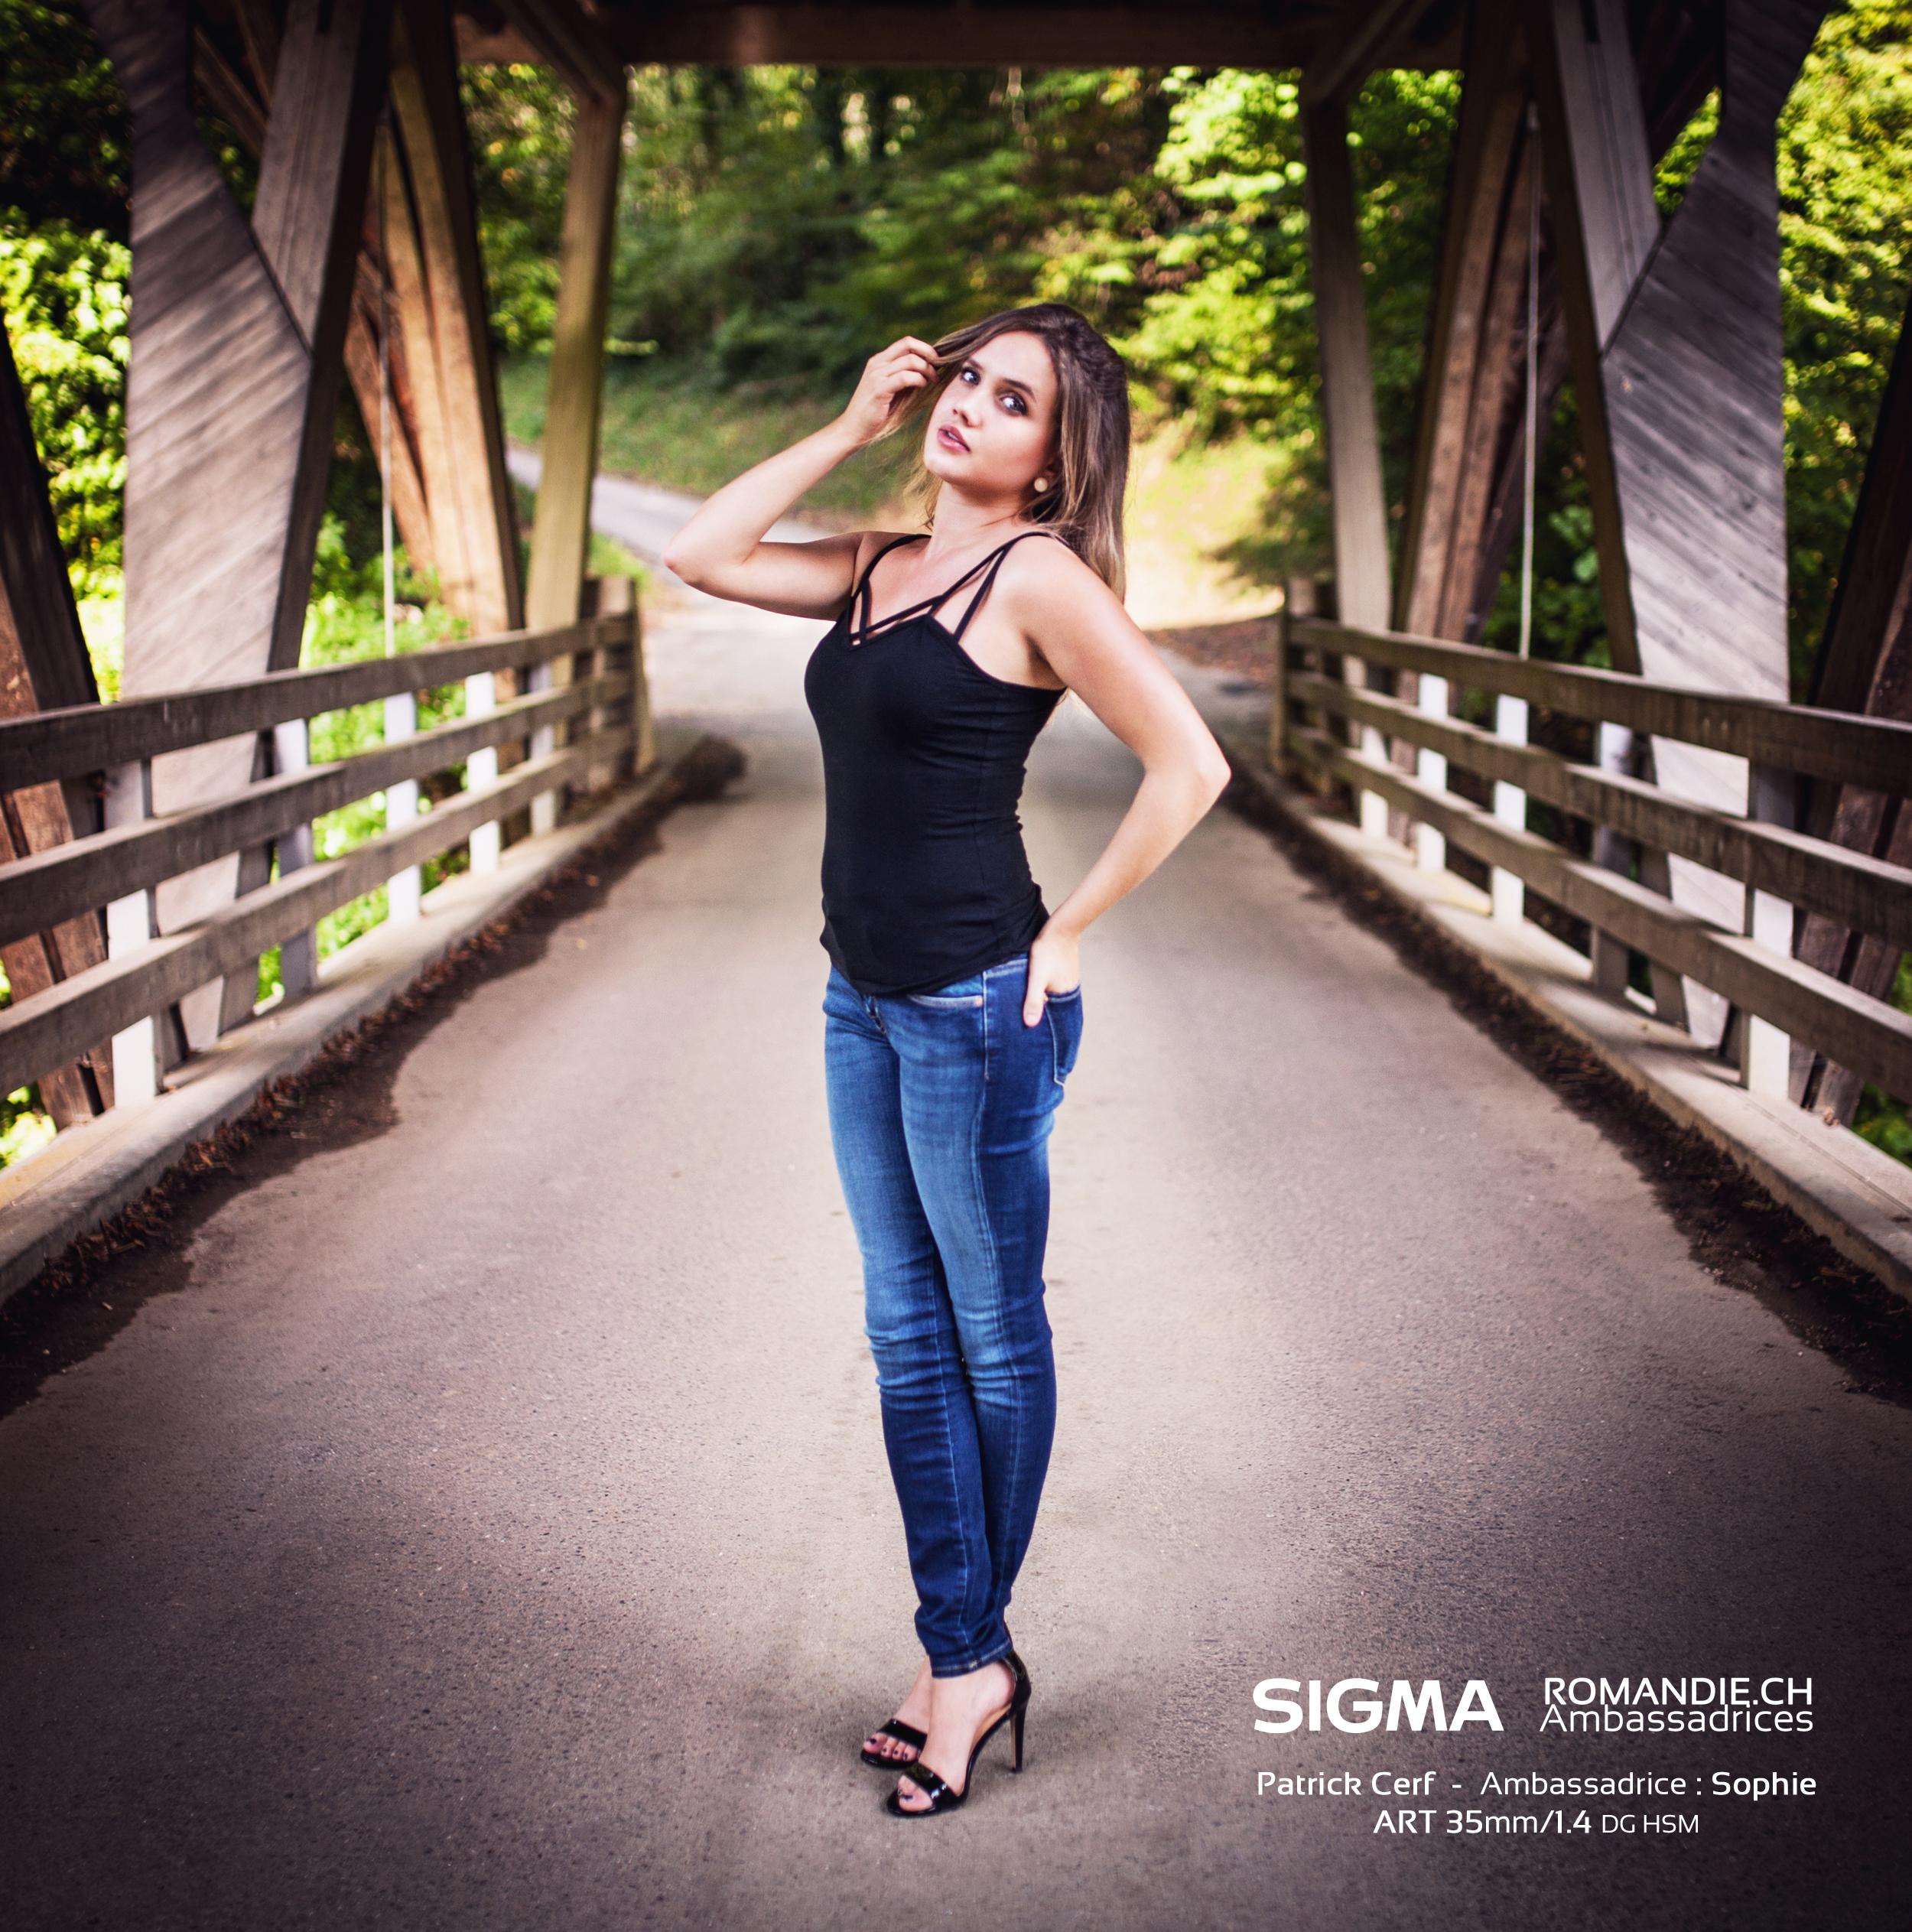 Sigma_02_Sophie_2 HD